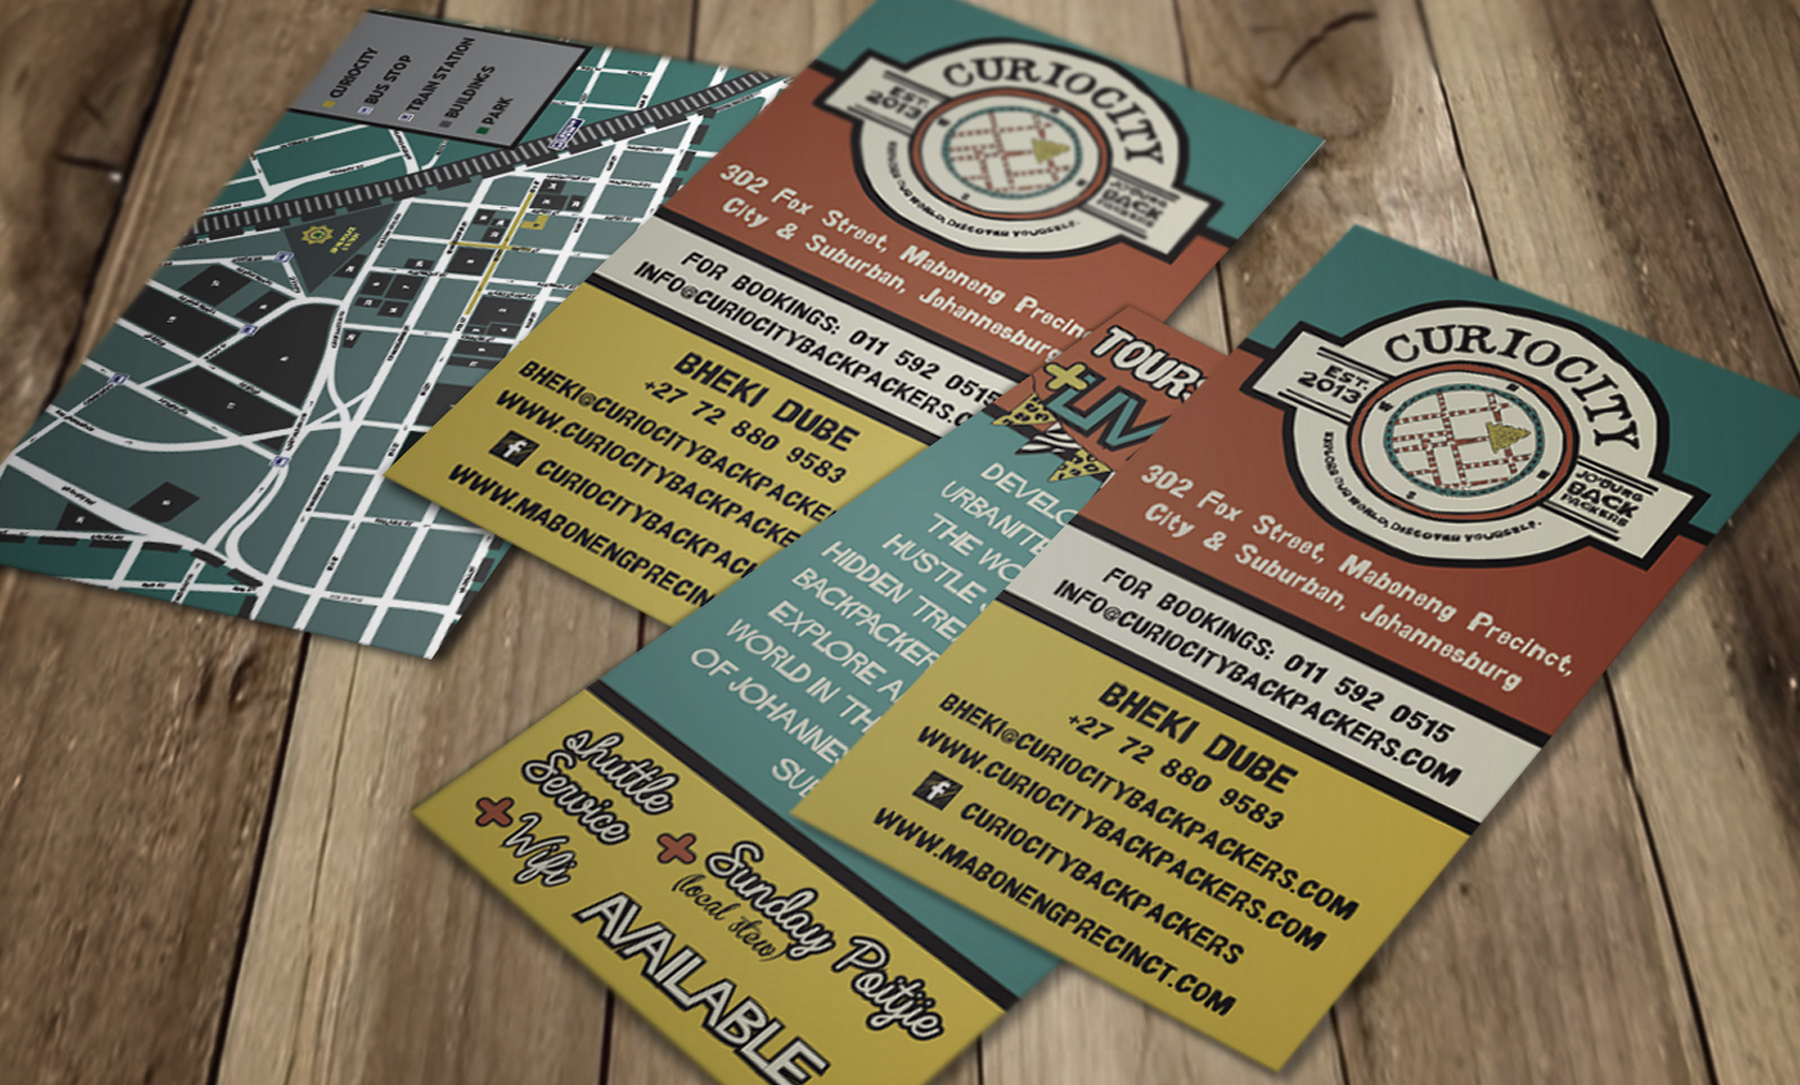 Curioucity_business-cards_110914-2